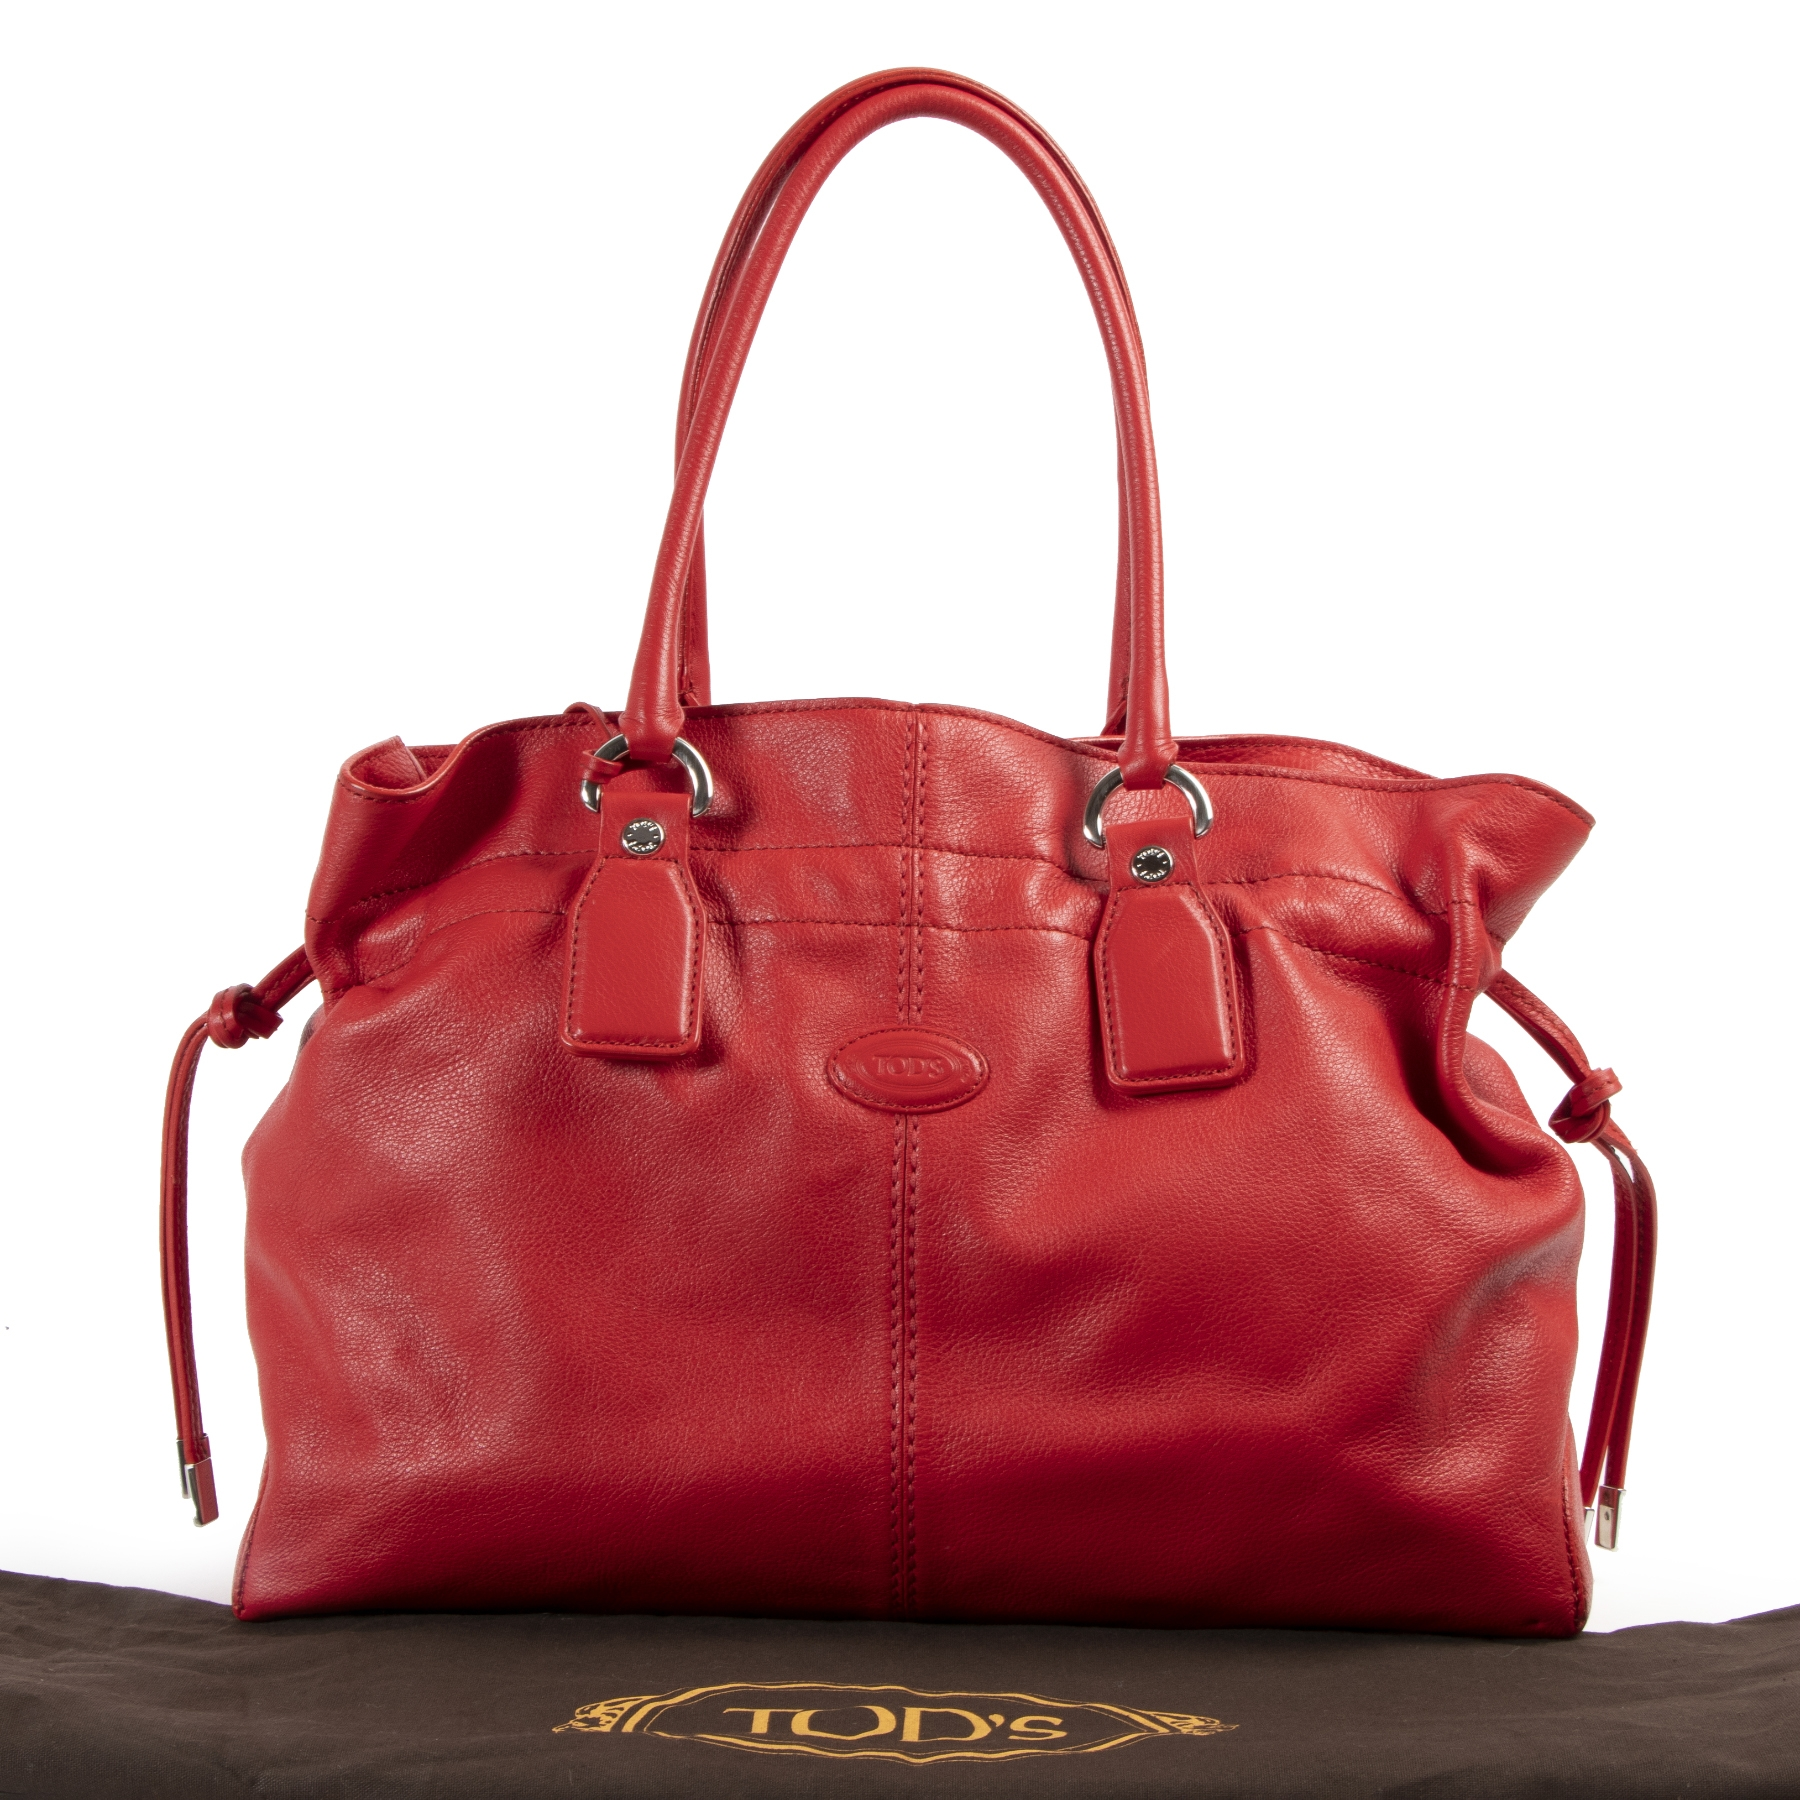 Authentieke tweedehands Tods handtassen LabelLOV Antwerpen webshop Authentic secondhand Tods bags LabelLOV Antwerp Authentique second-main sacs-à-main LabelLOV Anvers